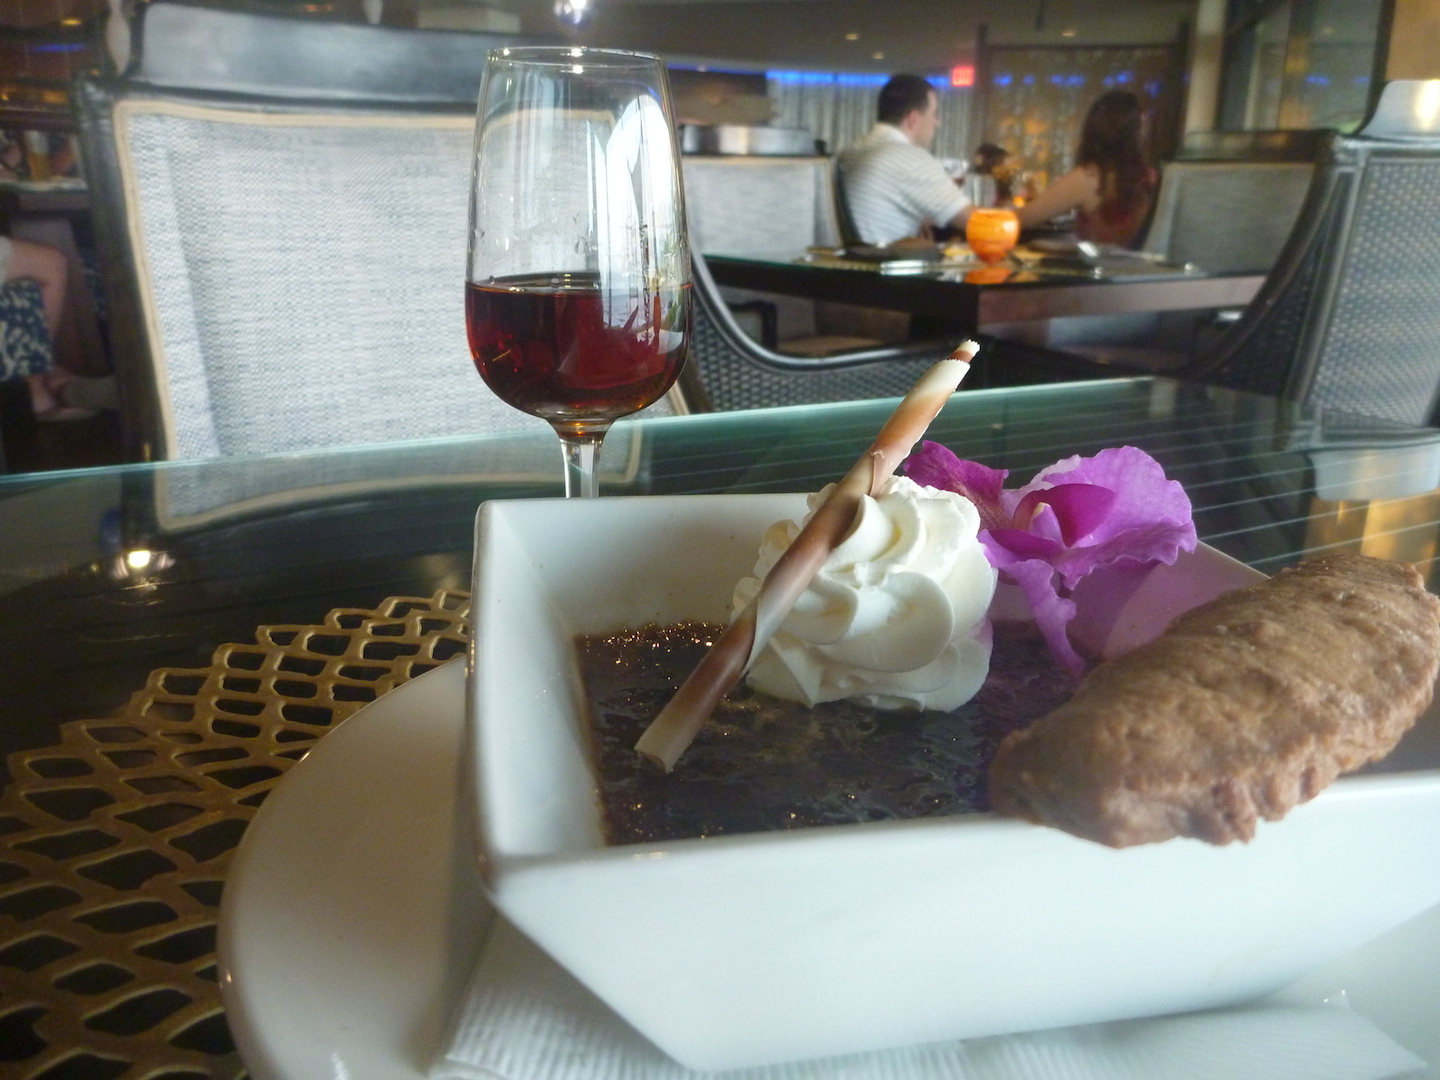 For dessert, Kaua'i Coffee Creme Brûlée, served with a cinnamon biscotti and a thick layer of sugar. Paired with the Zaya Guatemalan rum.